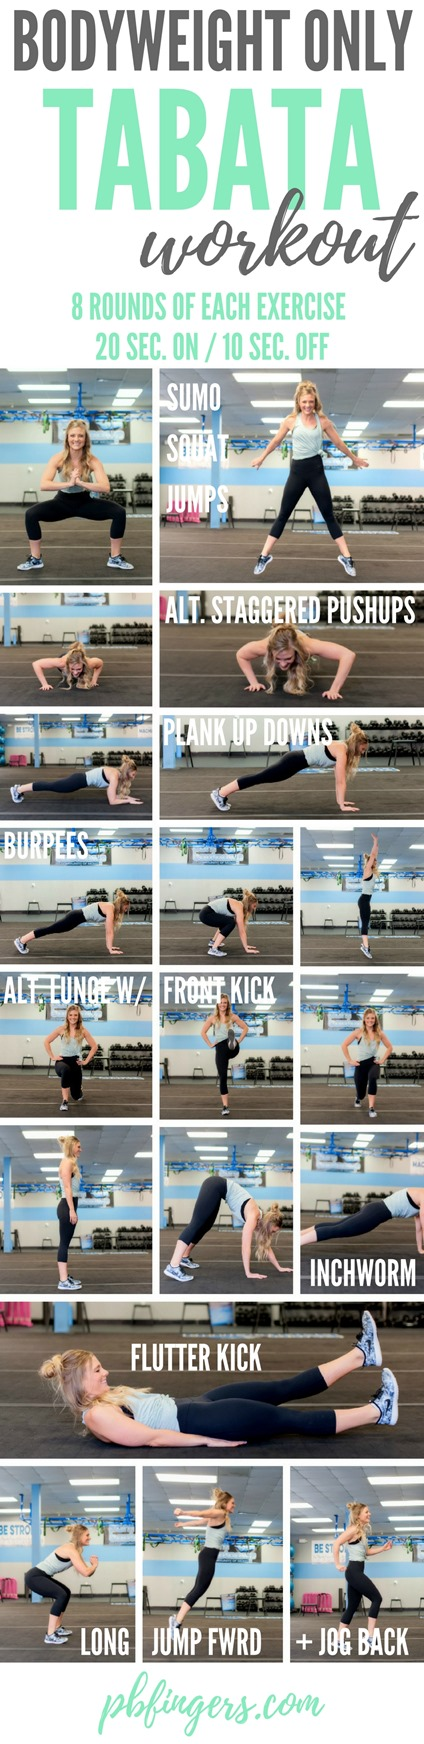 Bodyweight Tabata Workout